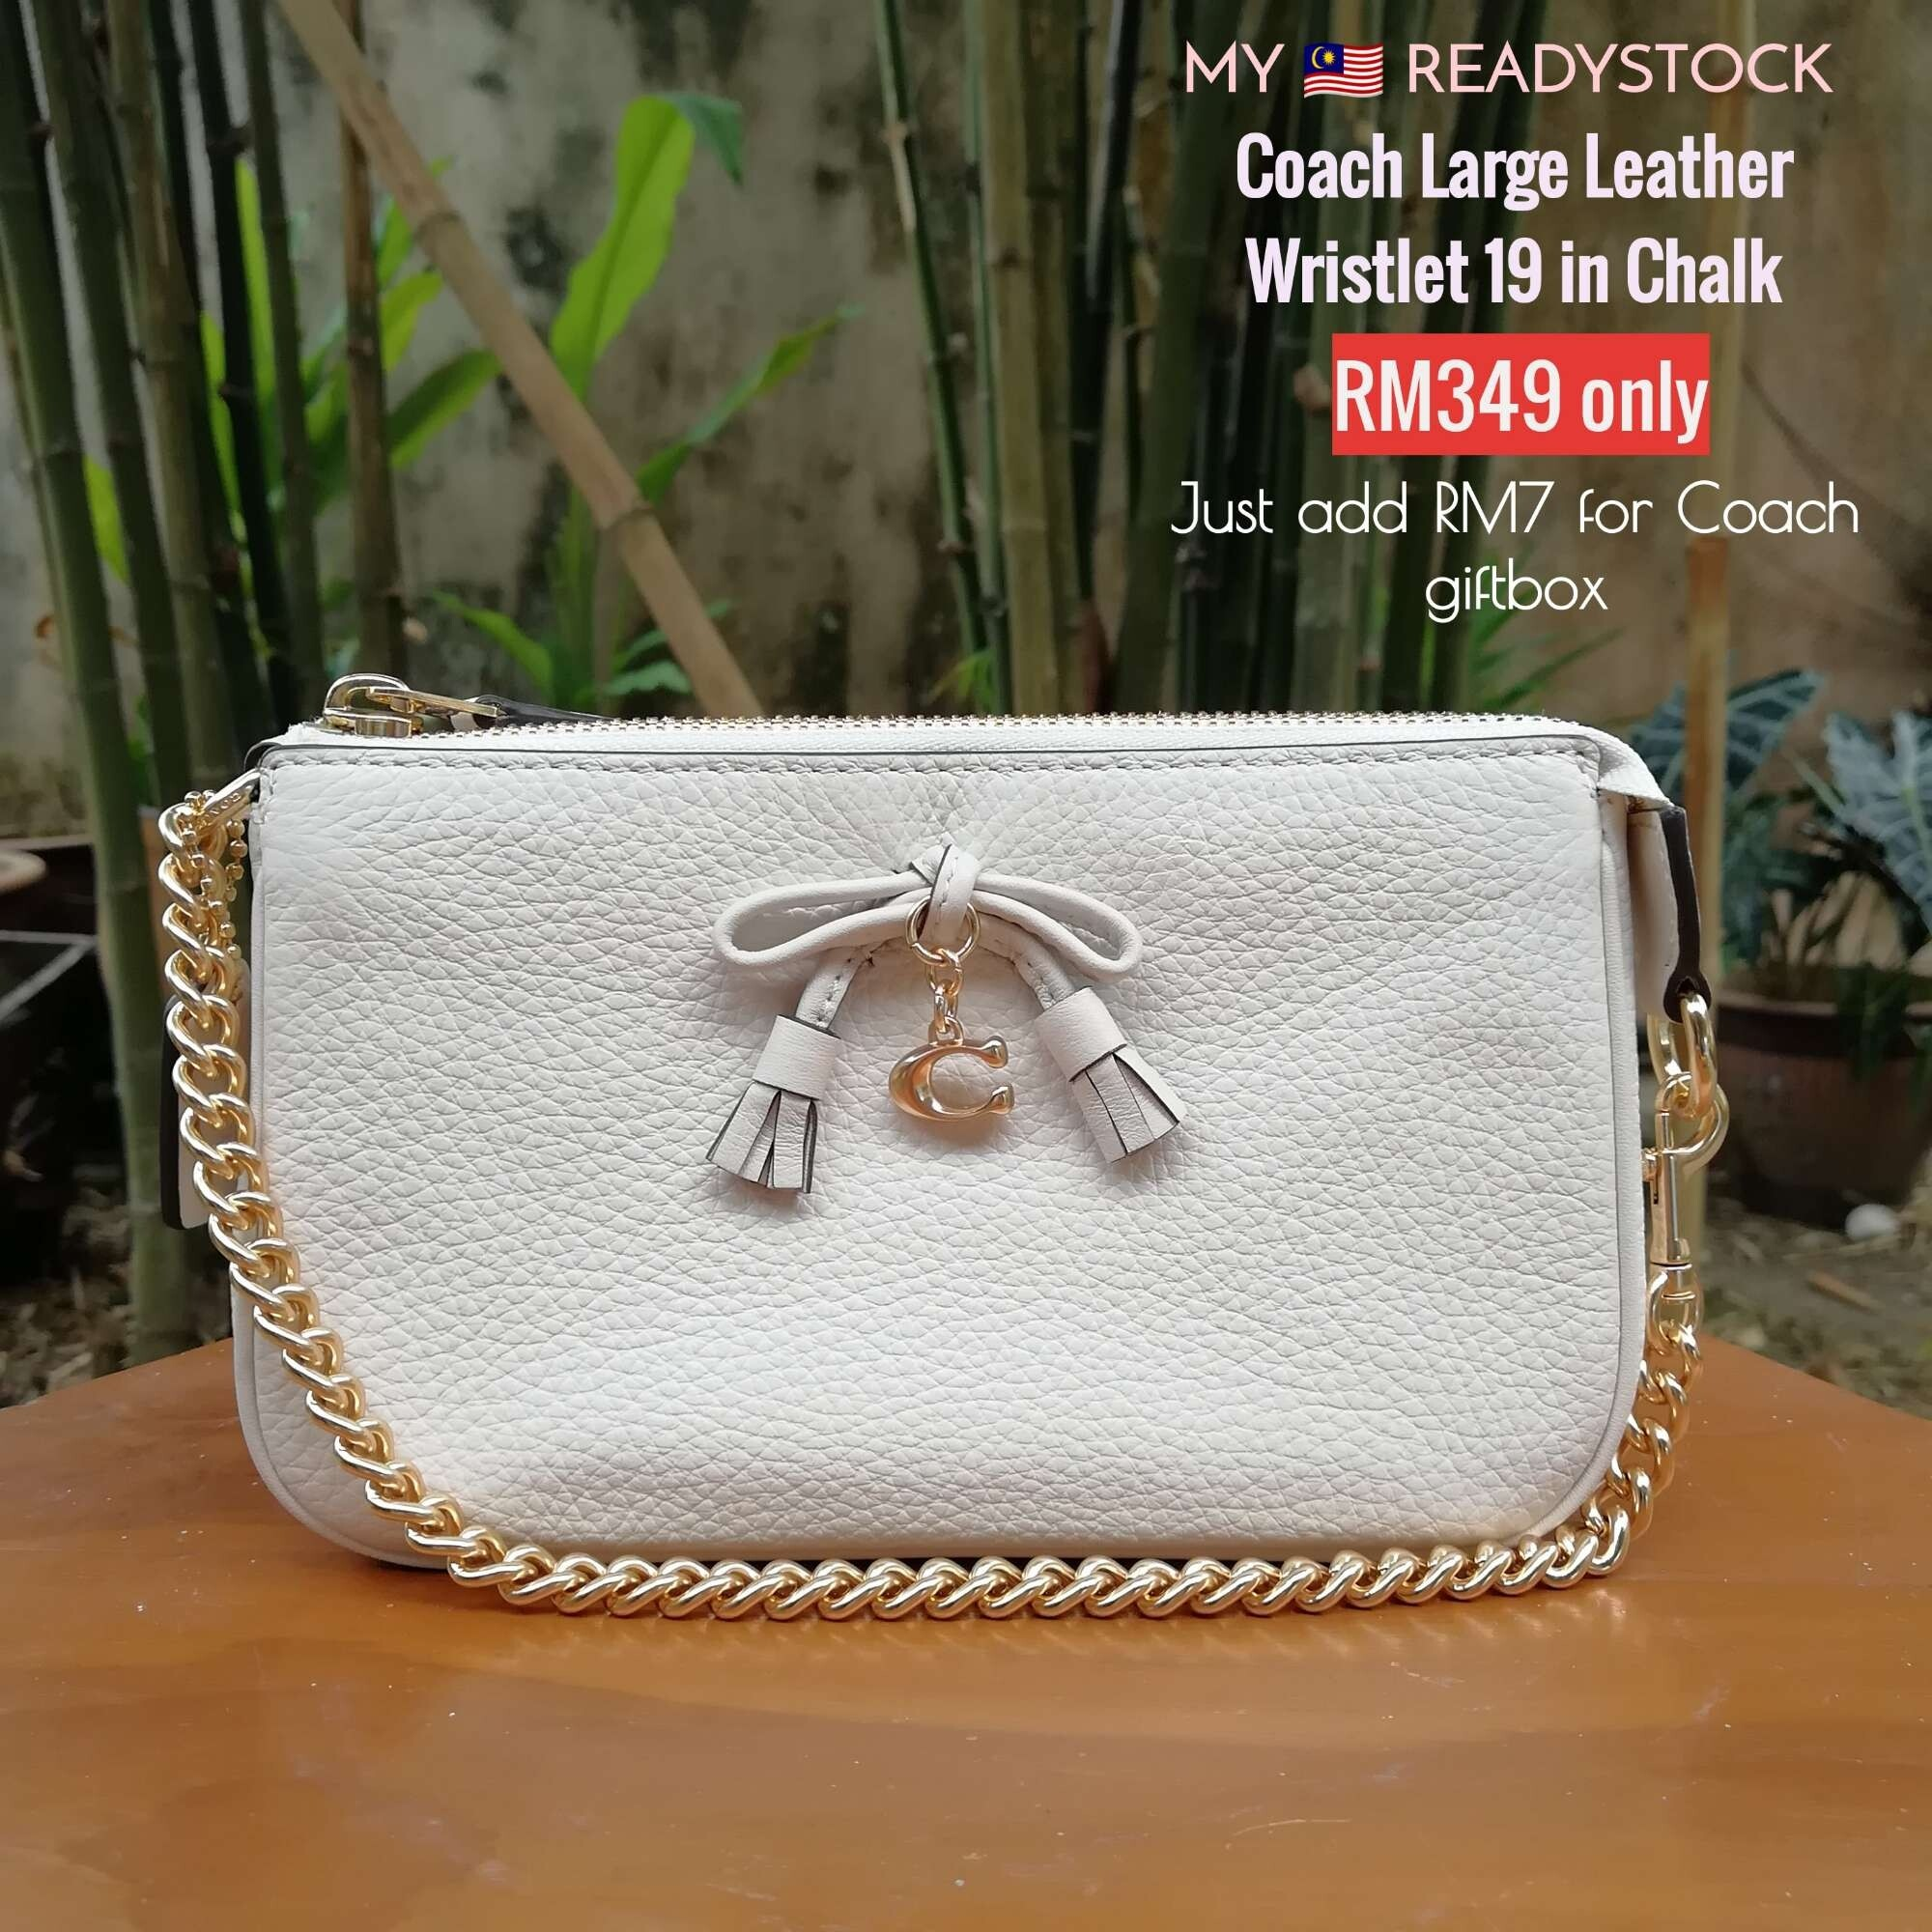 Readystock Coach Large Leather Wristlet in White Chalk Pebbled Leather